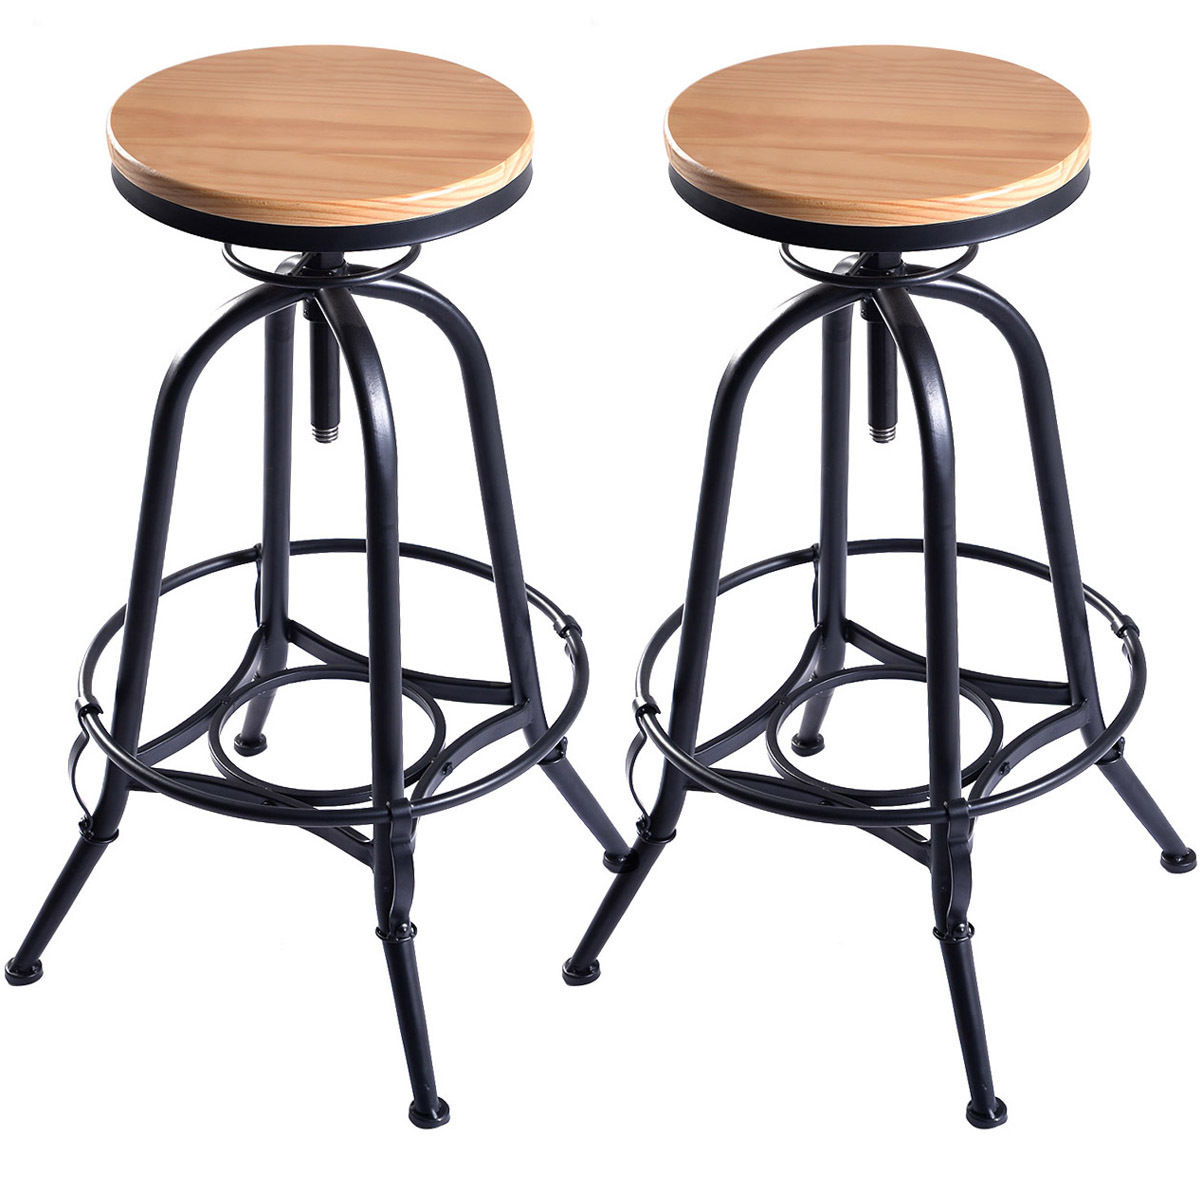 Costway Set of 2 Vintage Bar Stools Industrial Metal Design Wood Top Adjustable Swivel  sc 1 st  Walmart & Swivel Bar Stools islam-shia.org